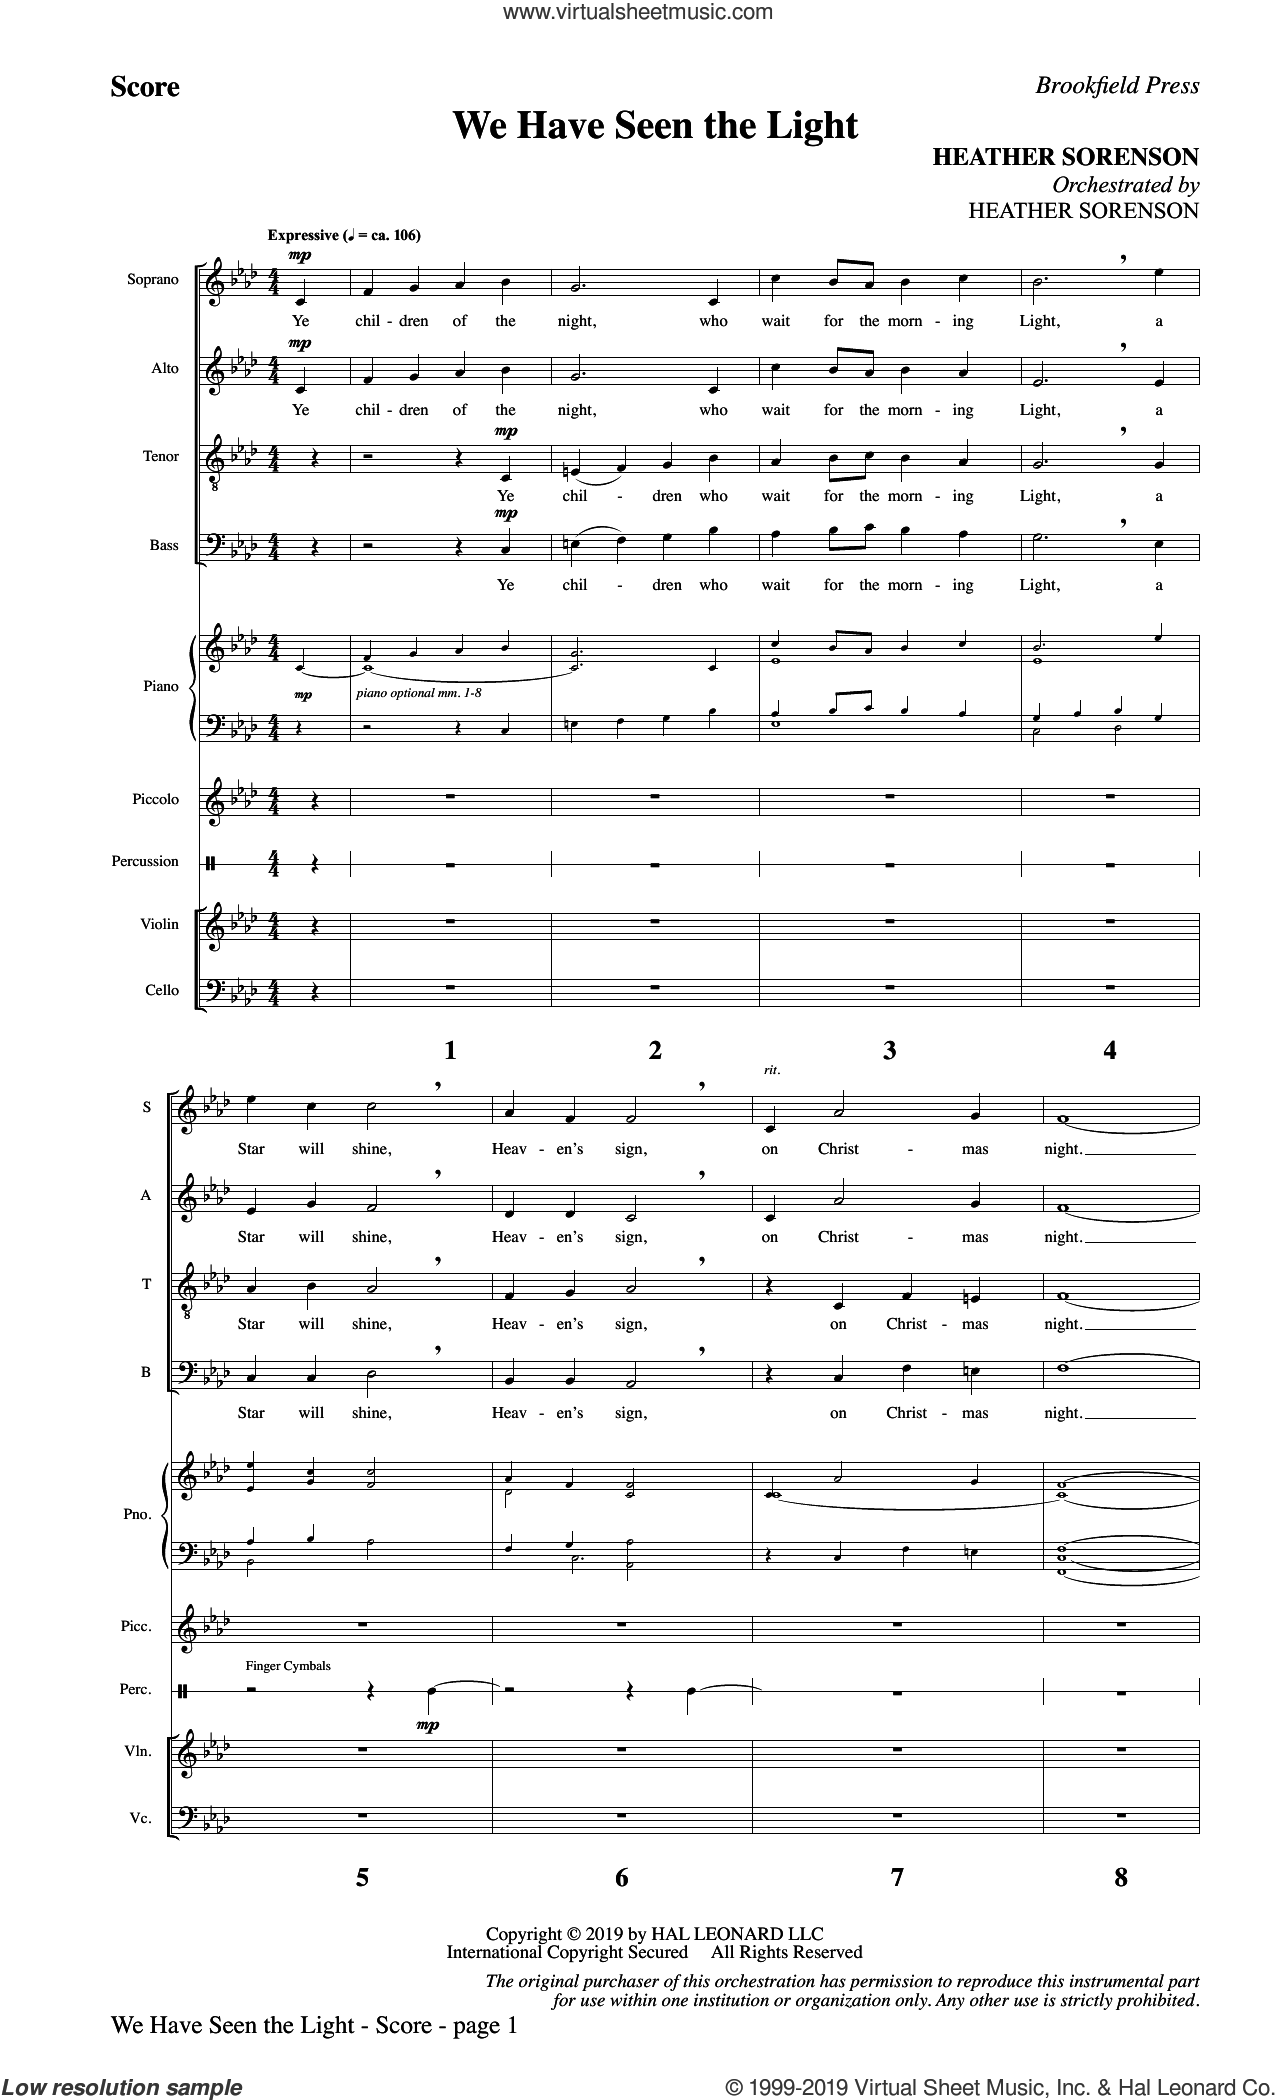 We Have Seen the Light (COMPLETE) sheet music for orchestra/band by Heather Sorenson, intermediate skill level